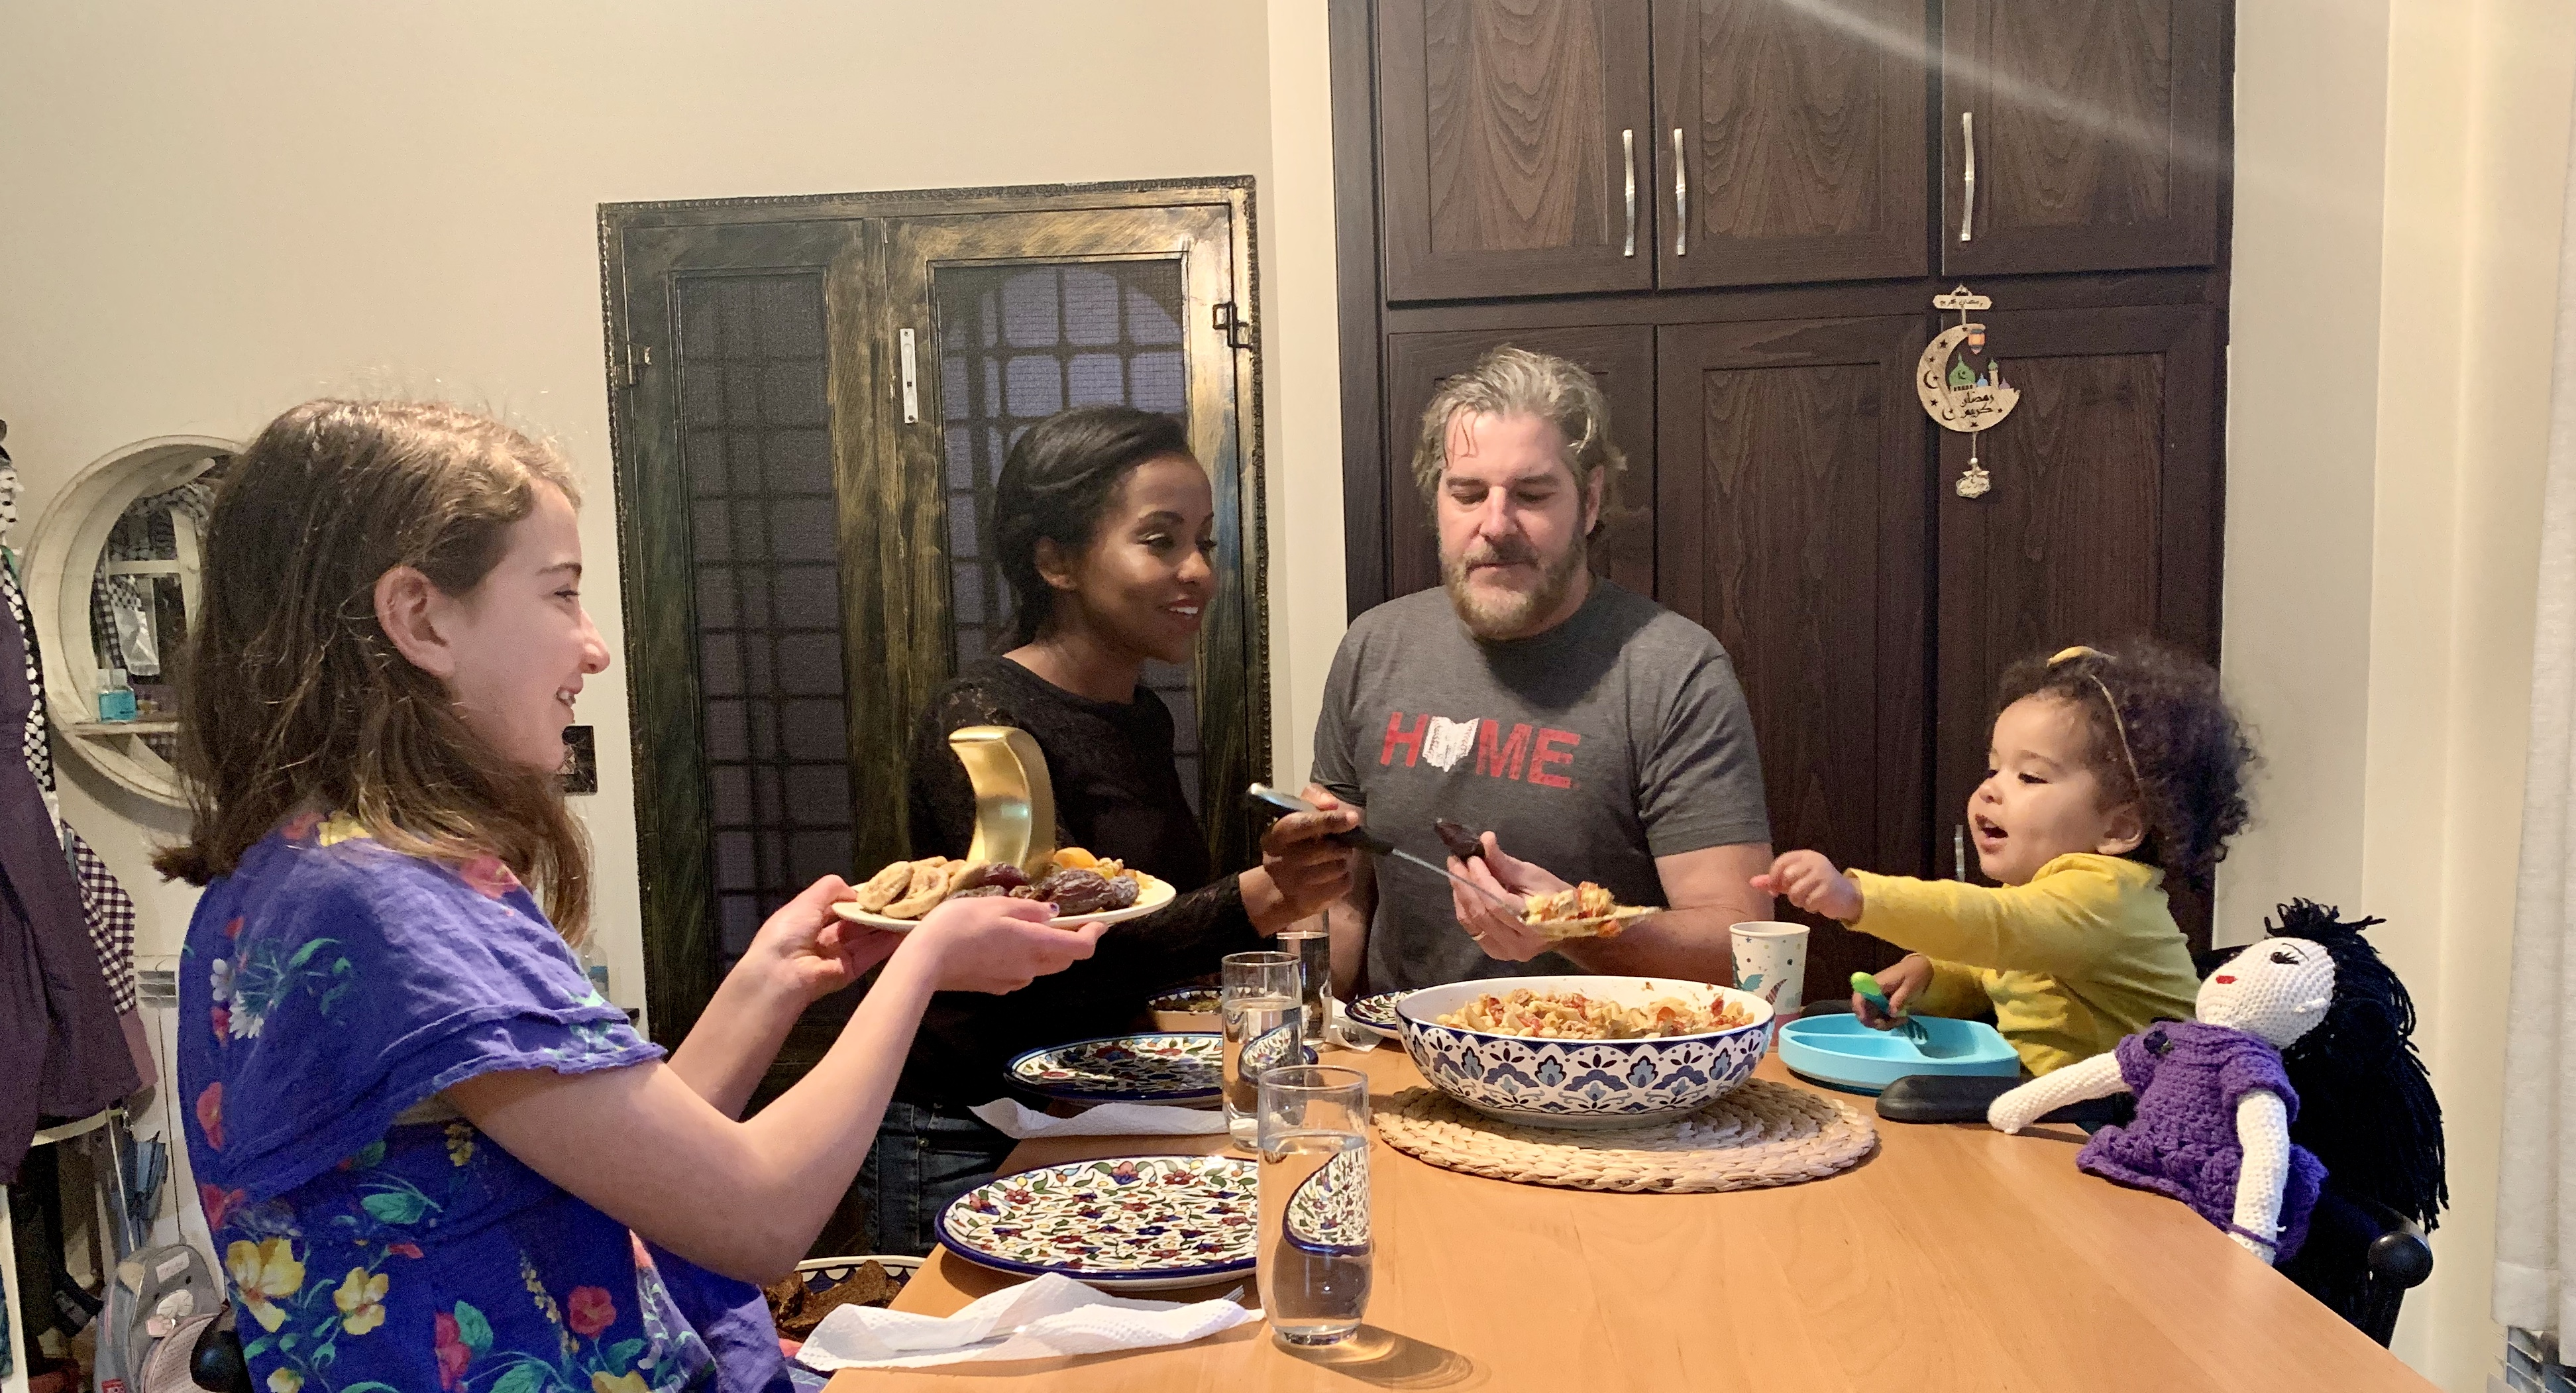 Dr. Zeena Salman breaks her fast with her husband and two children during the holy month of Ramadan this year.